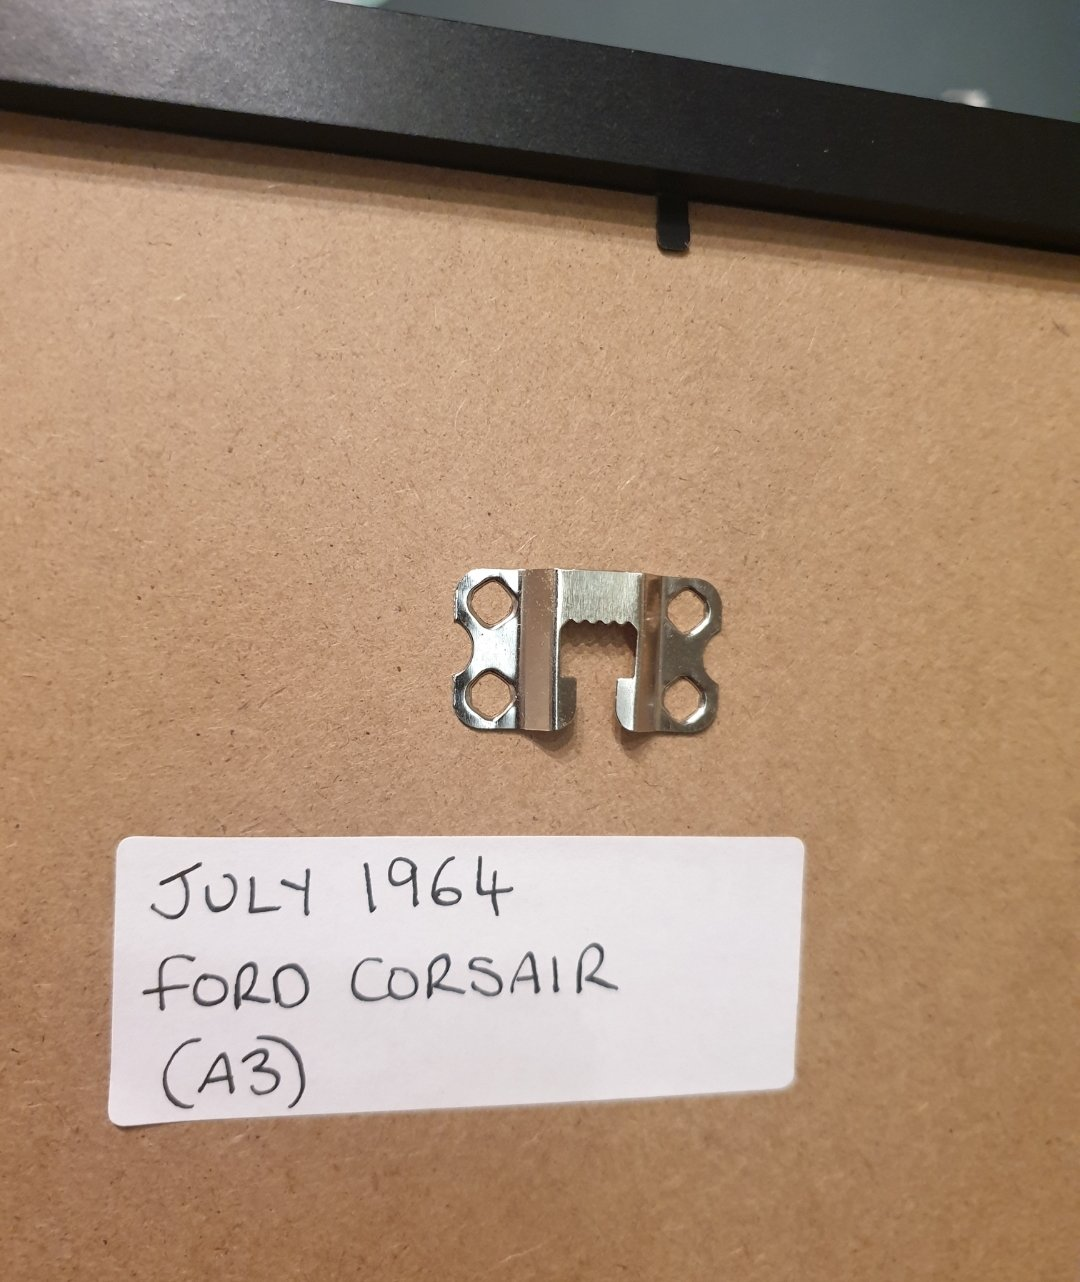 1964 Ford Corsair Framed Advert Original  For Sale (picture 2 of 2)